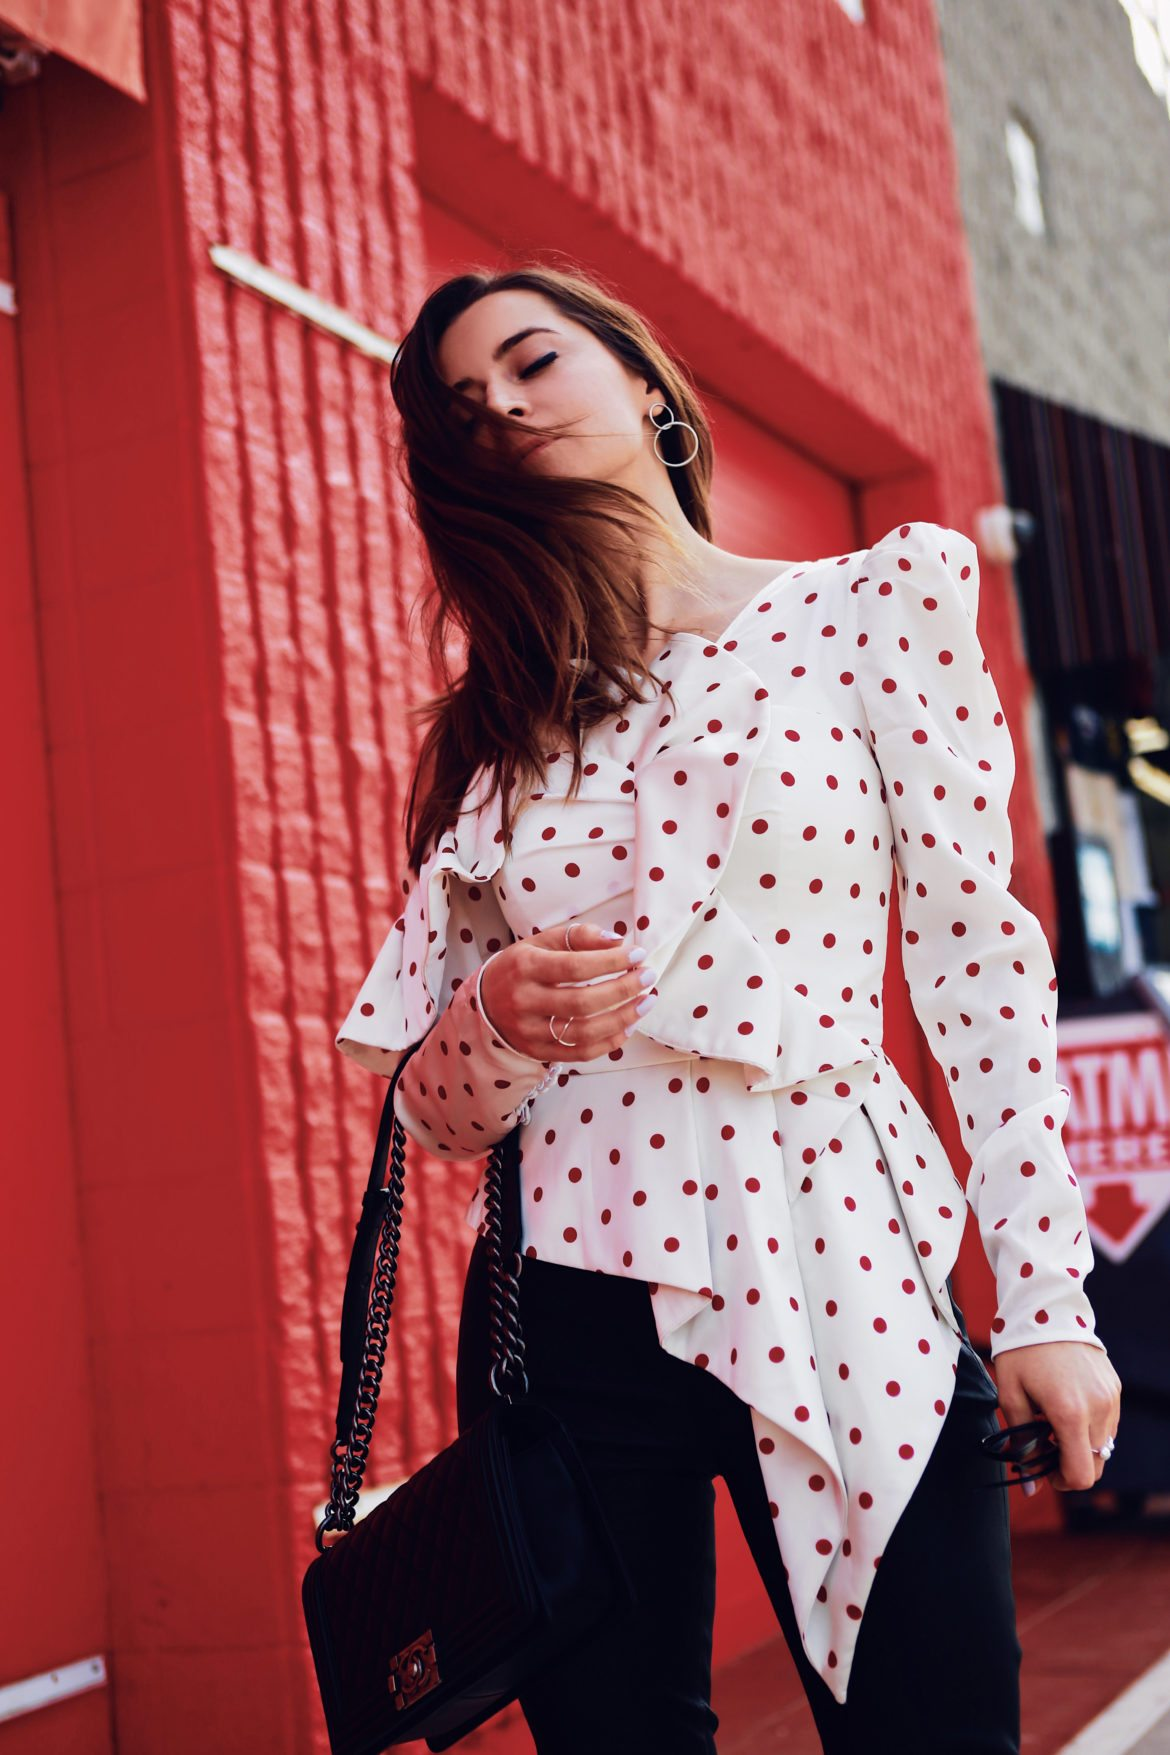 Ruffled skinny leather pants by Iro and structured polka dots blouse by Self Portrait via If Chic - More about this sophisticated and edgy look on Houseofcomil.com. Pictures by Julia Comil Los Angeles Fashion Blogger